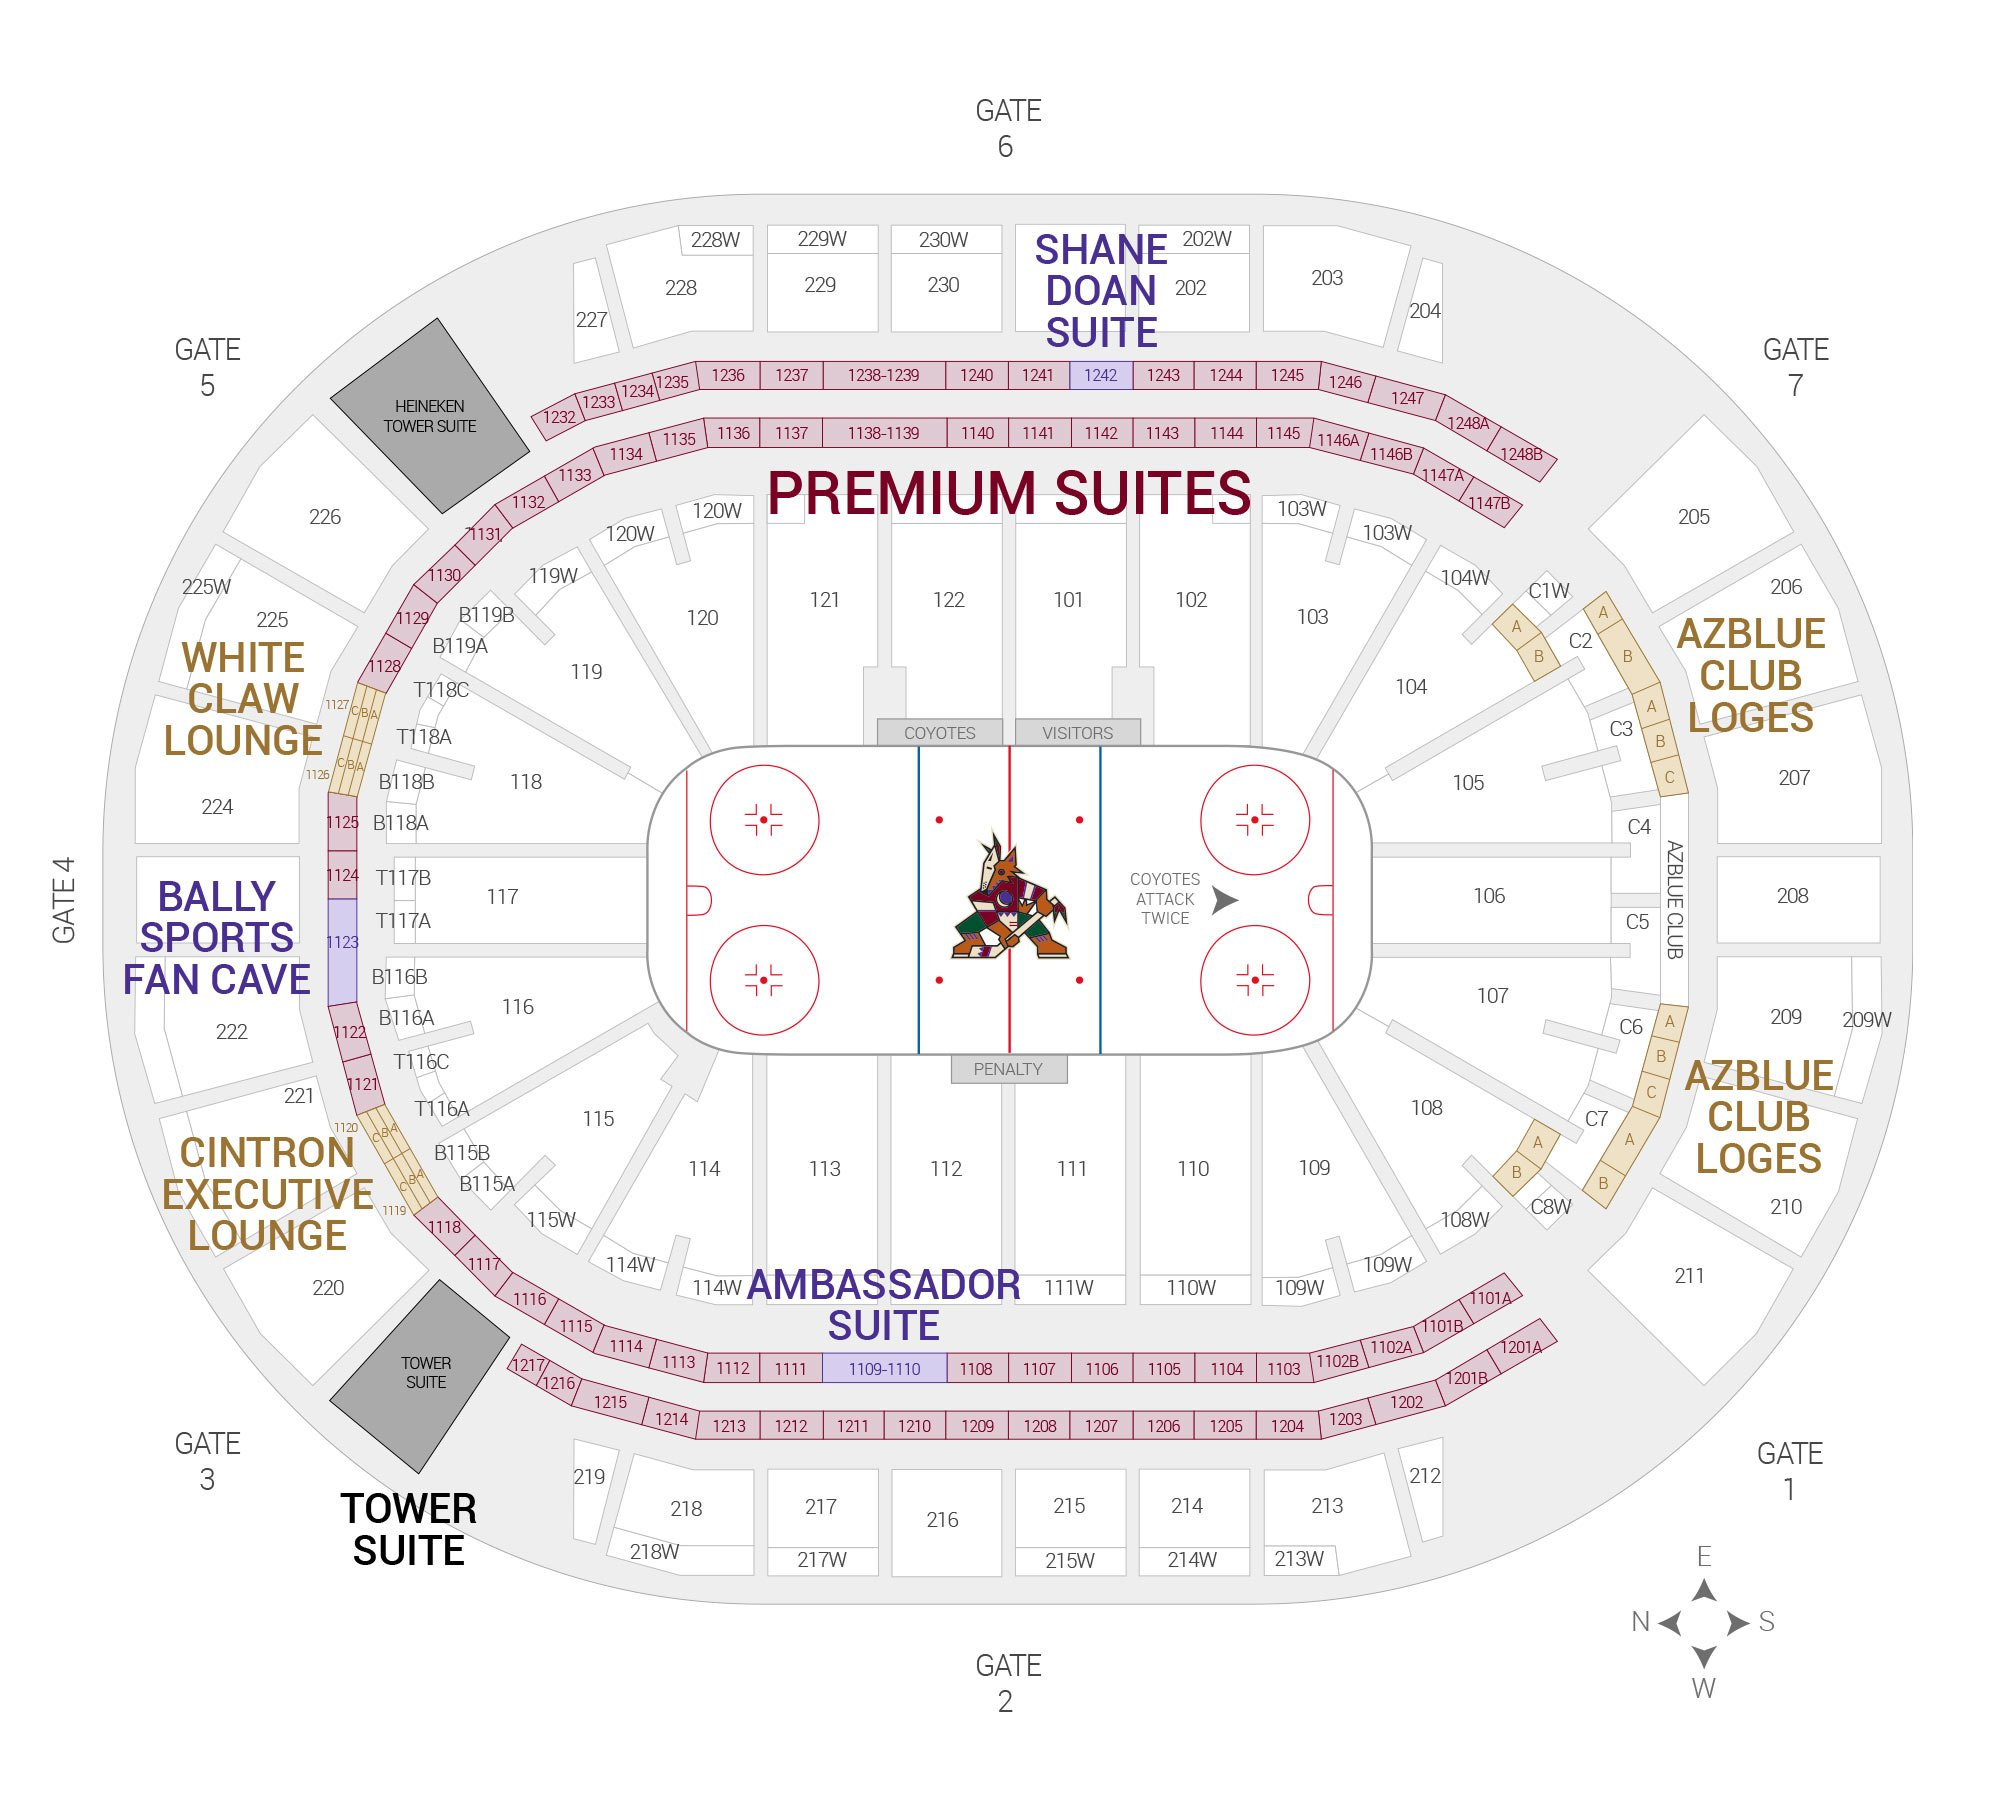 Gila River Arena / Arizona Coyotes Suite Map and Seating Chart